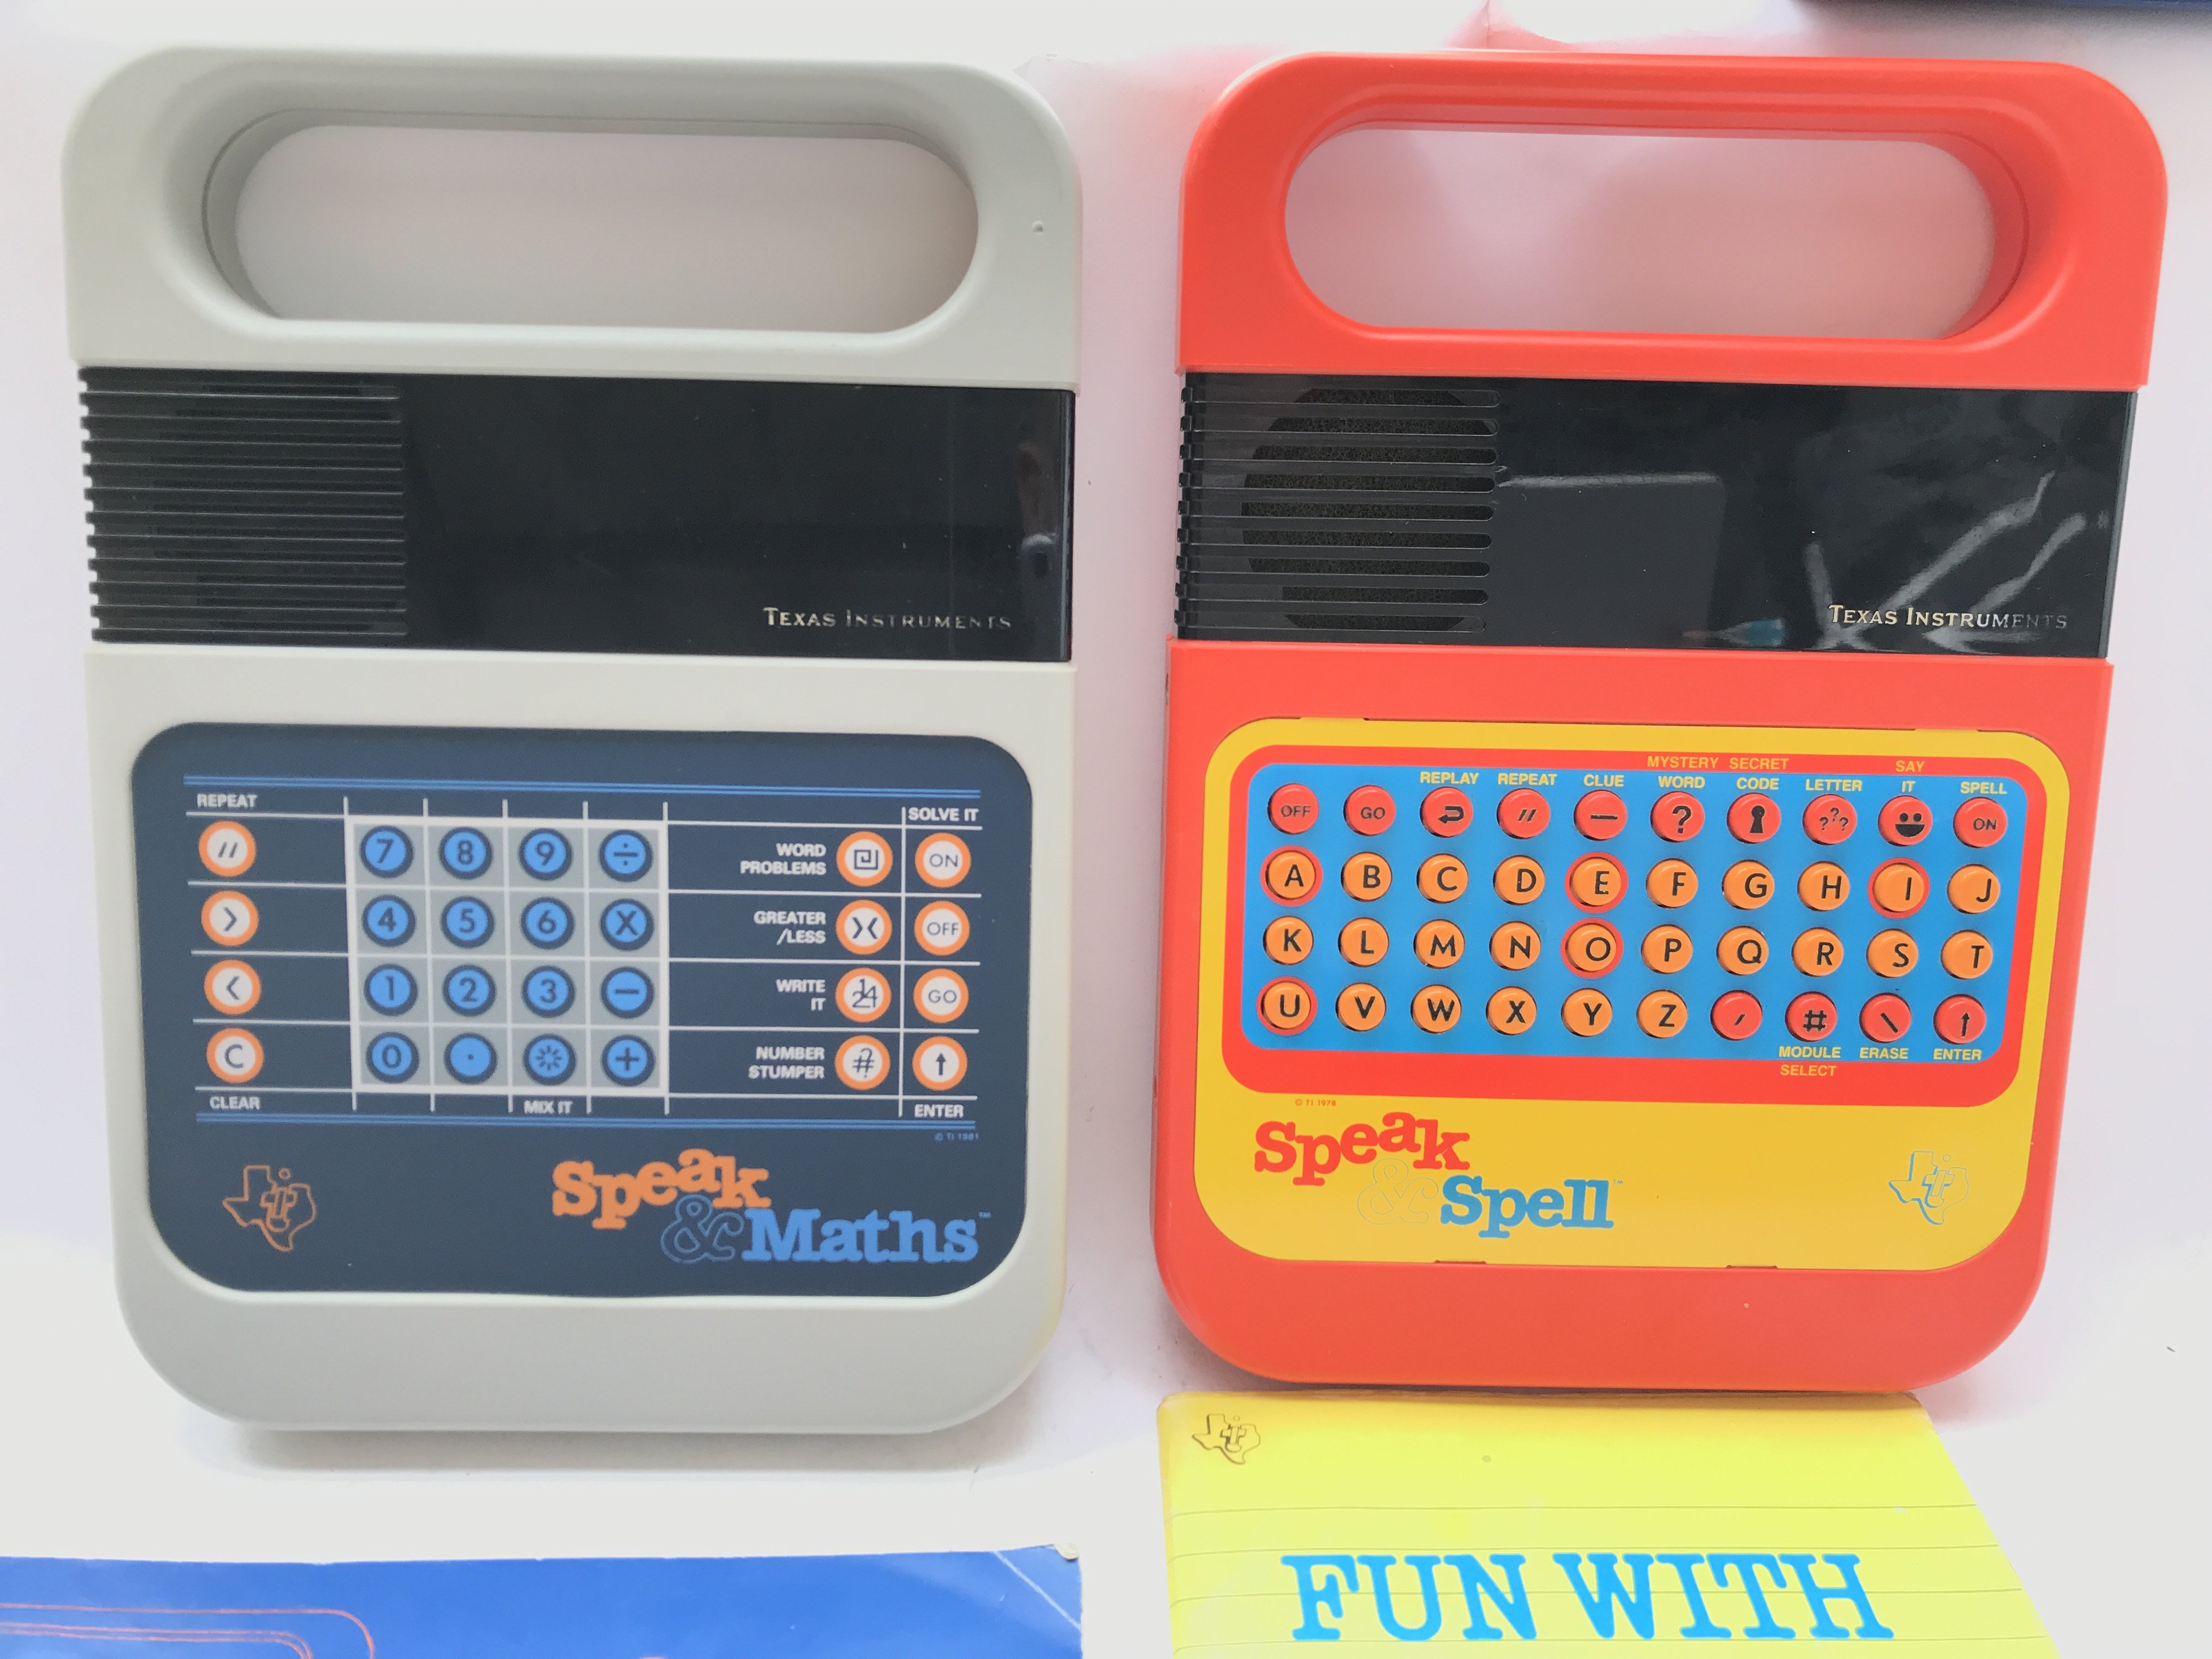 2 X Texas Instruments. A Speak and Maths and a Spe - Image 2 of 3